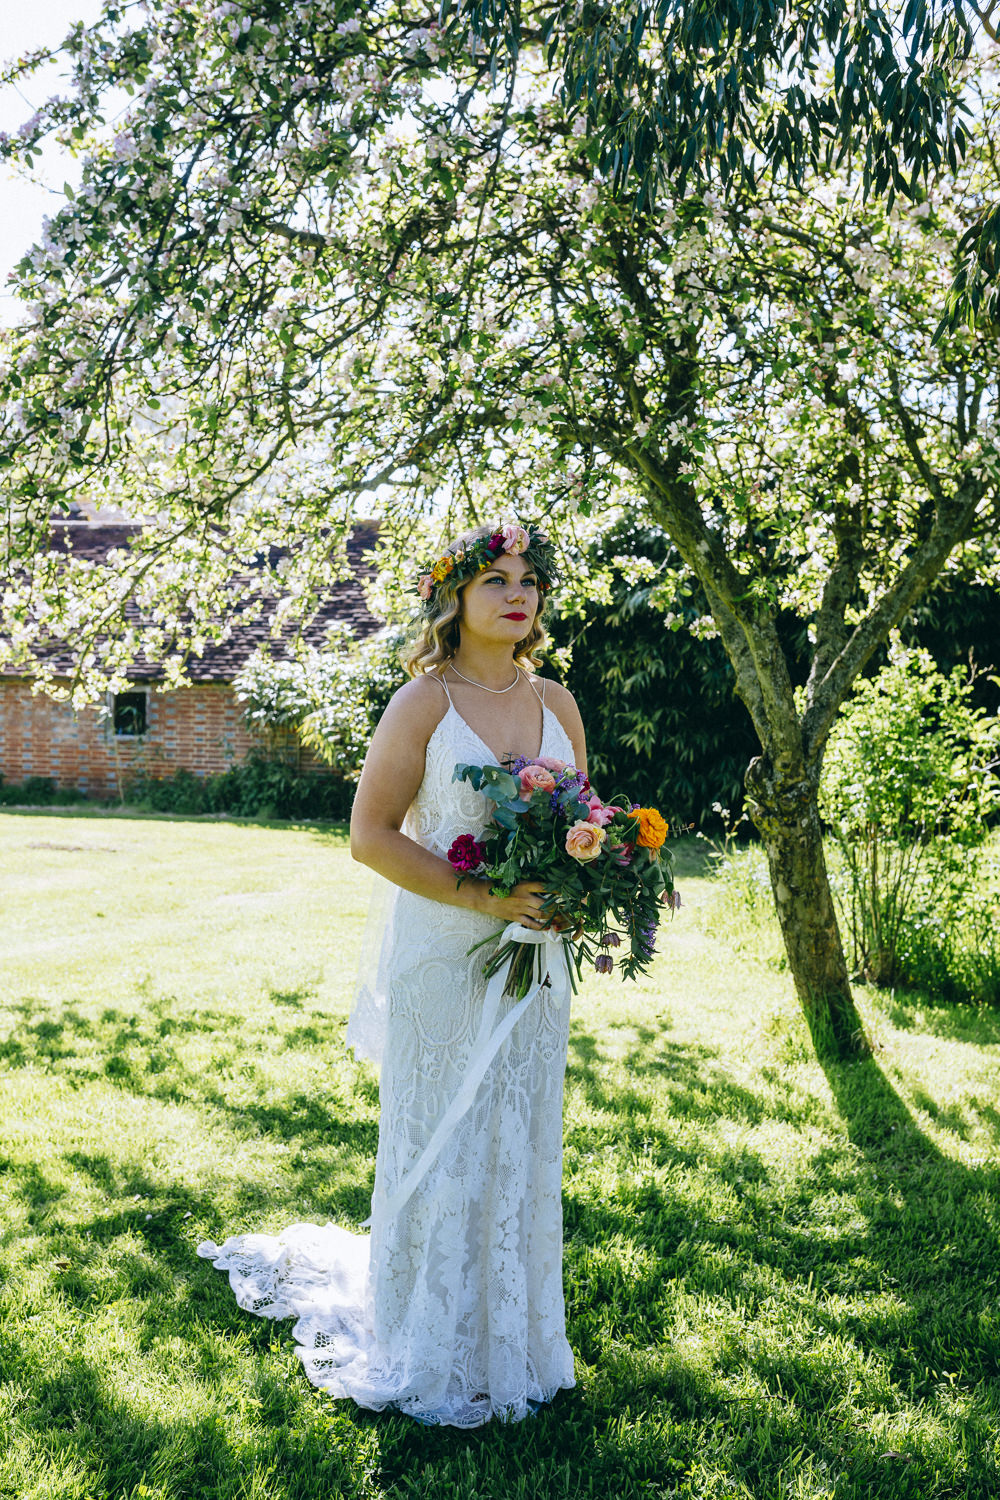 Bridal Gown Lace Veil Train Rue De Seine Wedding Dress Bride Curious Rose Photography